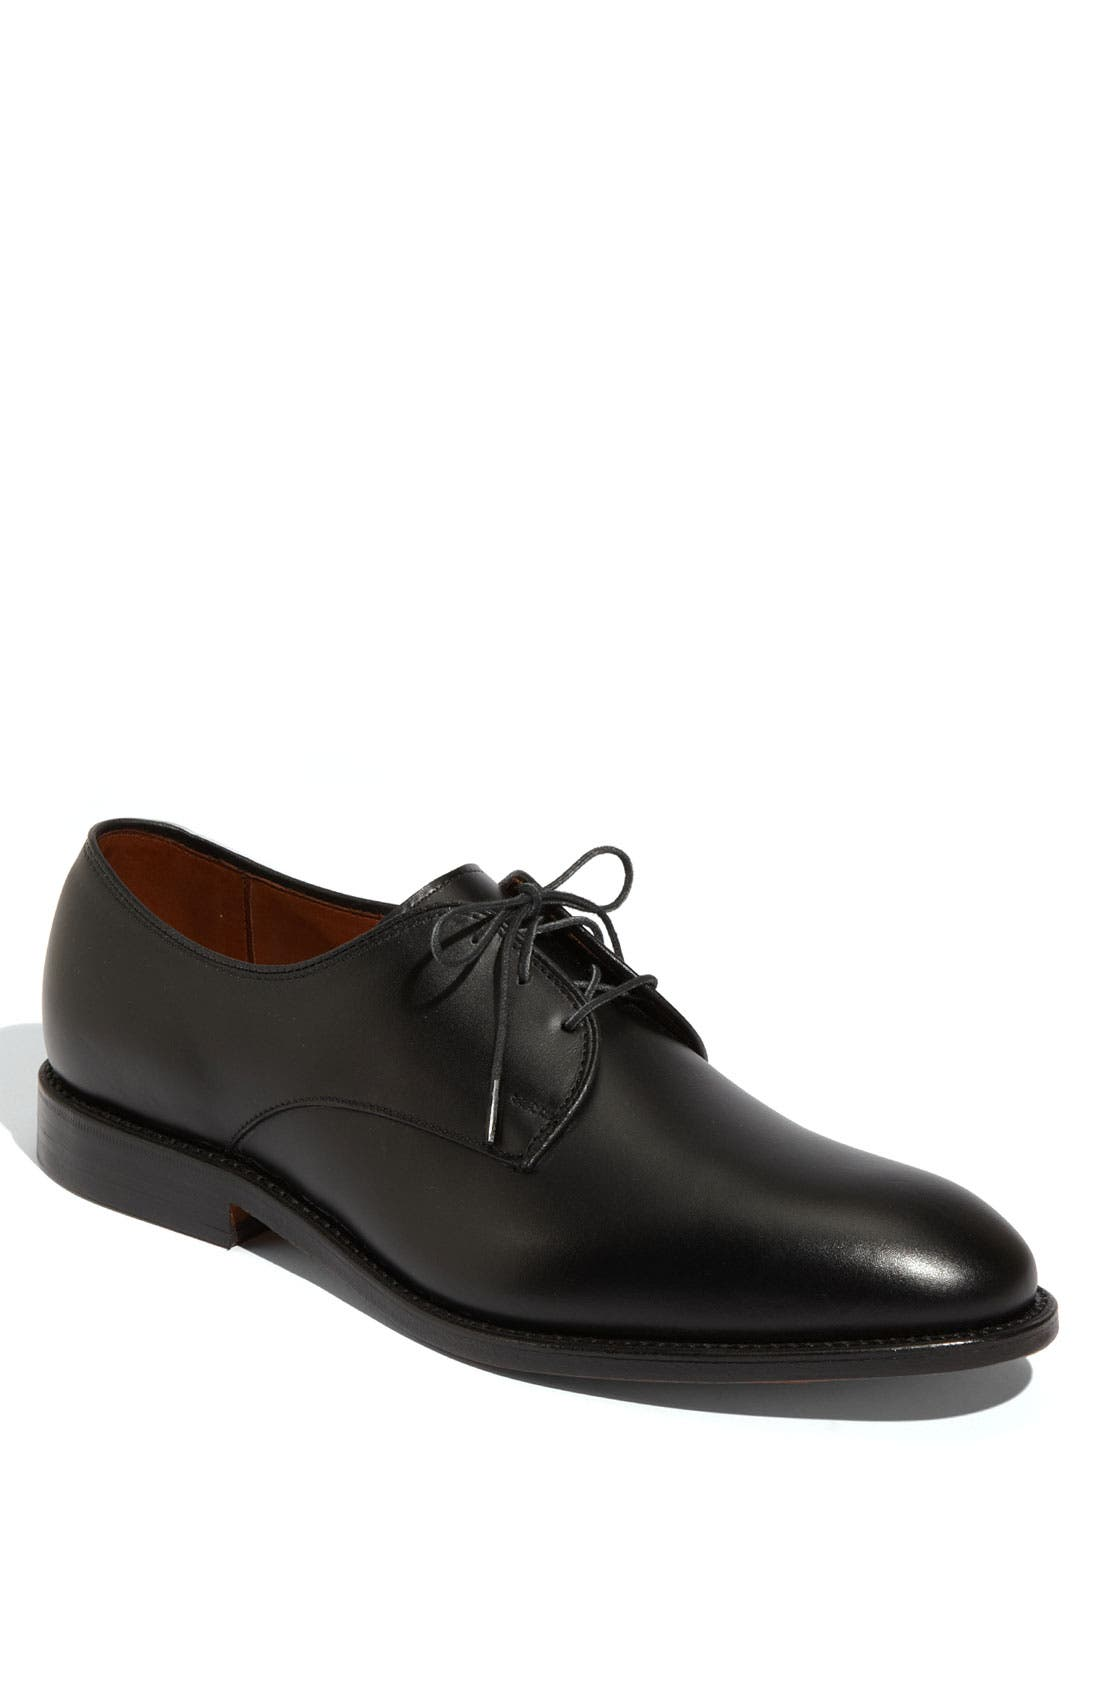 Alternate Image 1 Selected - Allen Edmonds 'Kenilworth' Oxford (Men)